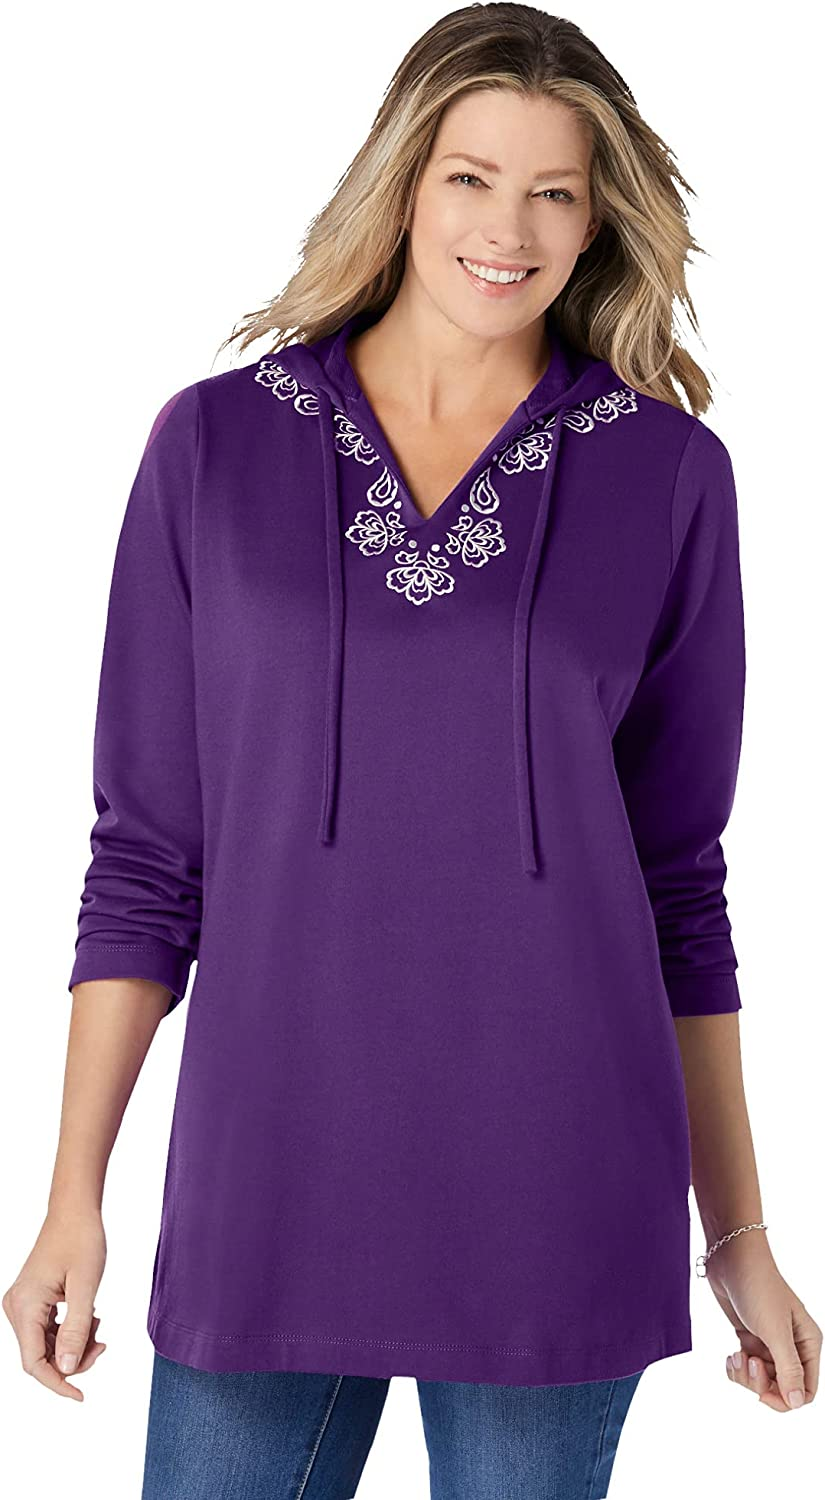 Woman Within Women's Plus Size Embroidered Sweatshirt Tunic